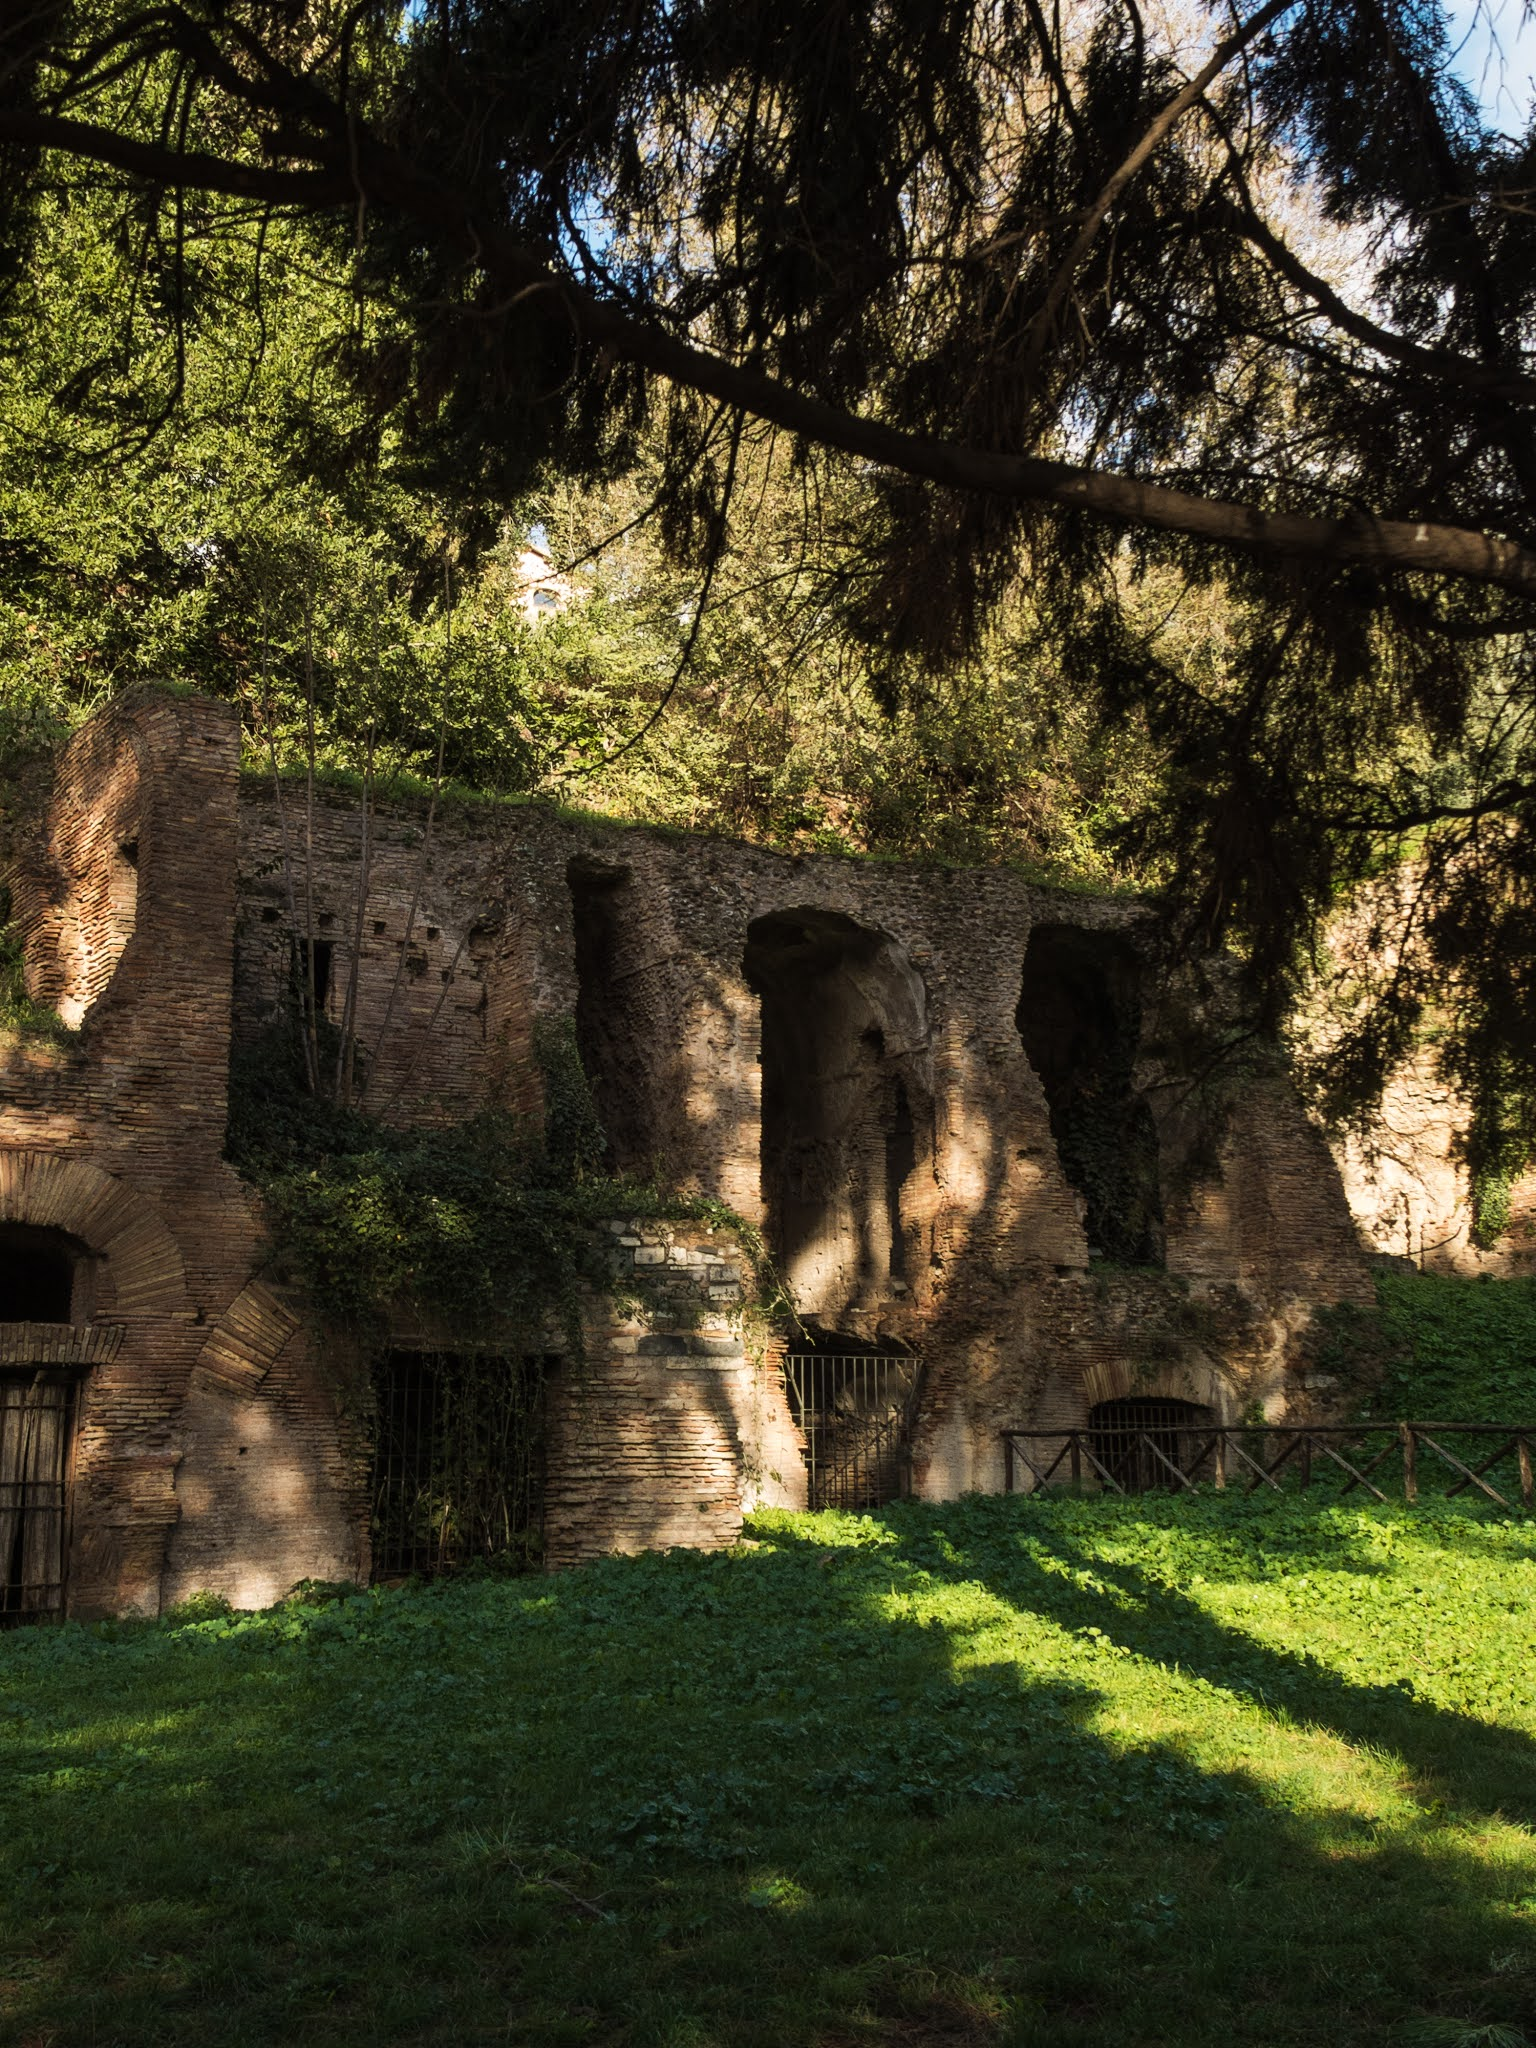 Red brick ruins on Palatine Hill surrounded with pine trees.